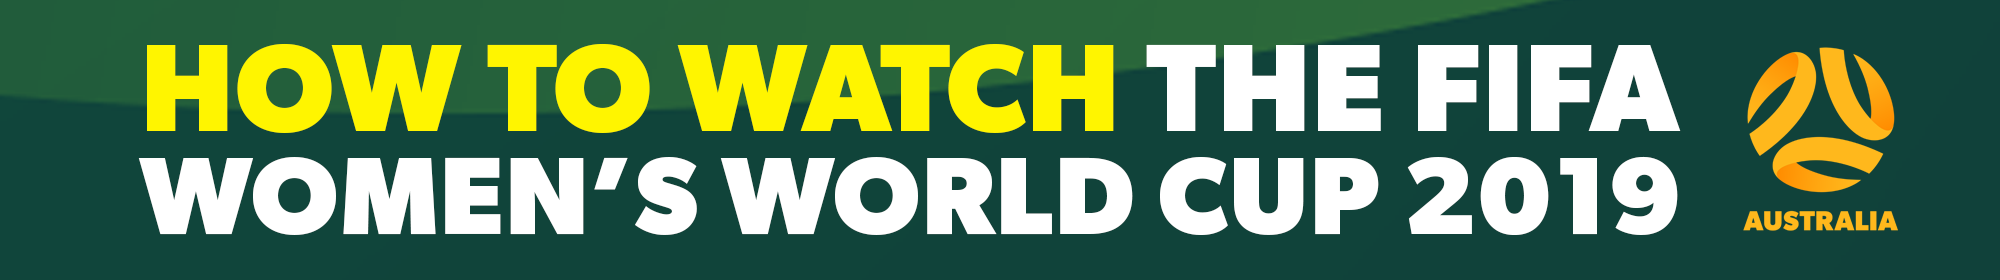 How to Watch FIFA Women's World Cup 2019